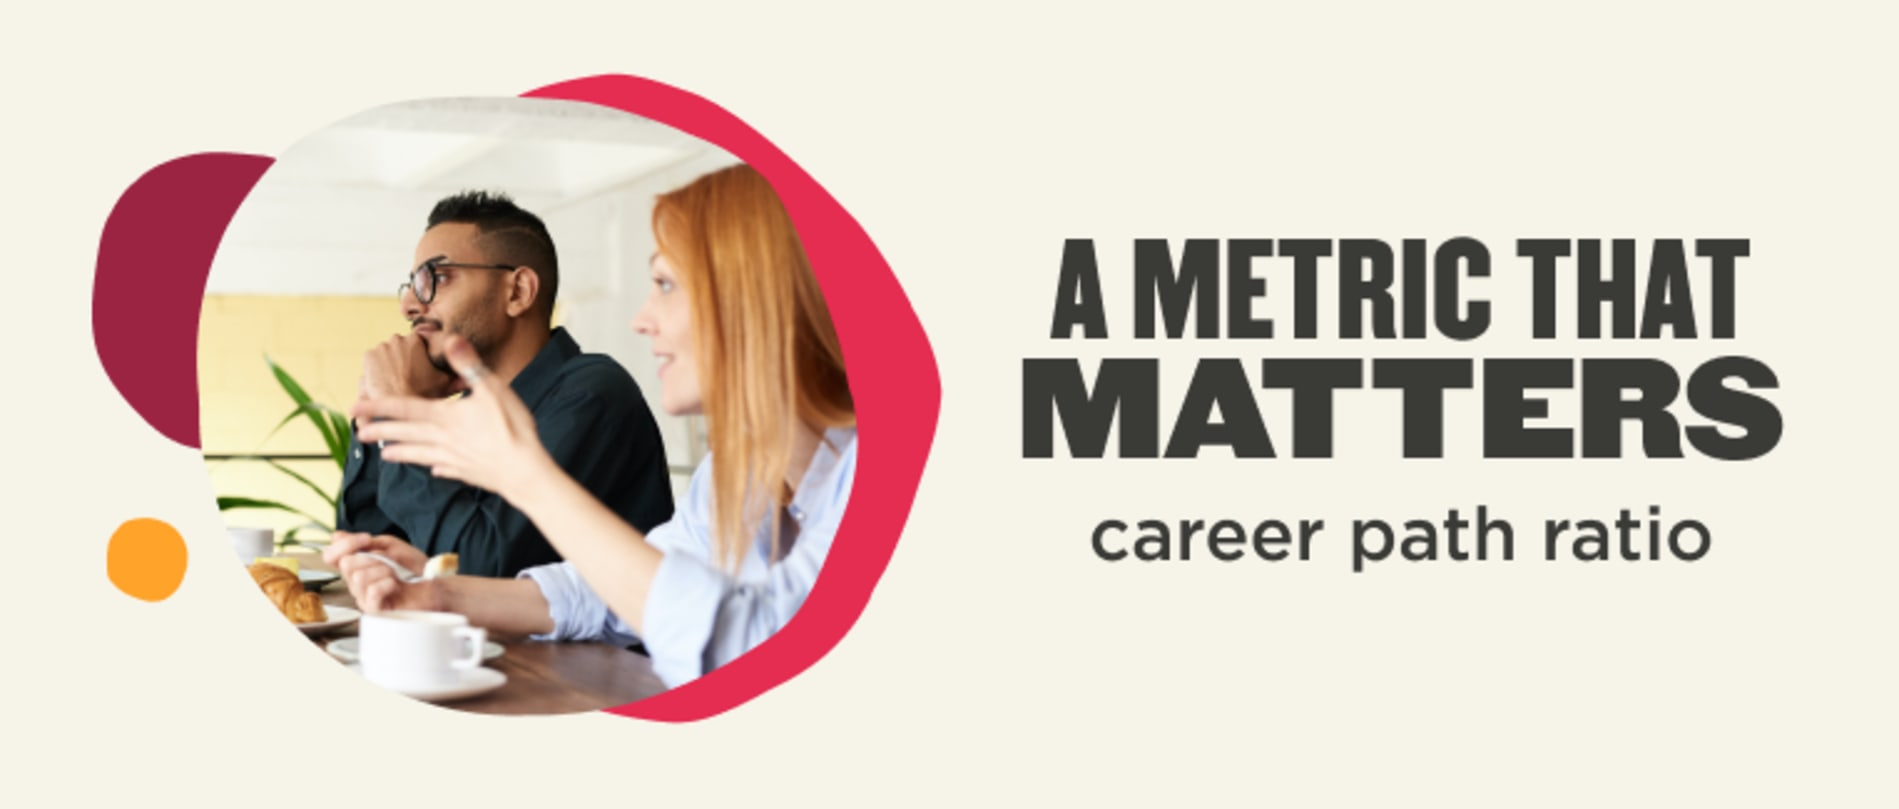 A metric that matters (career path ratio)